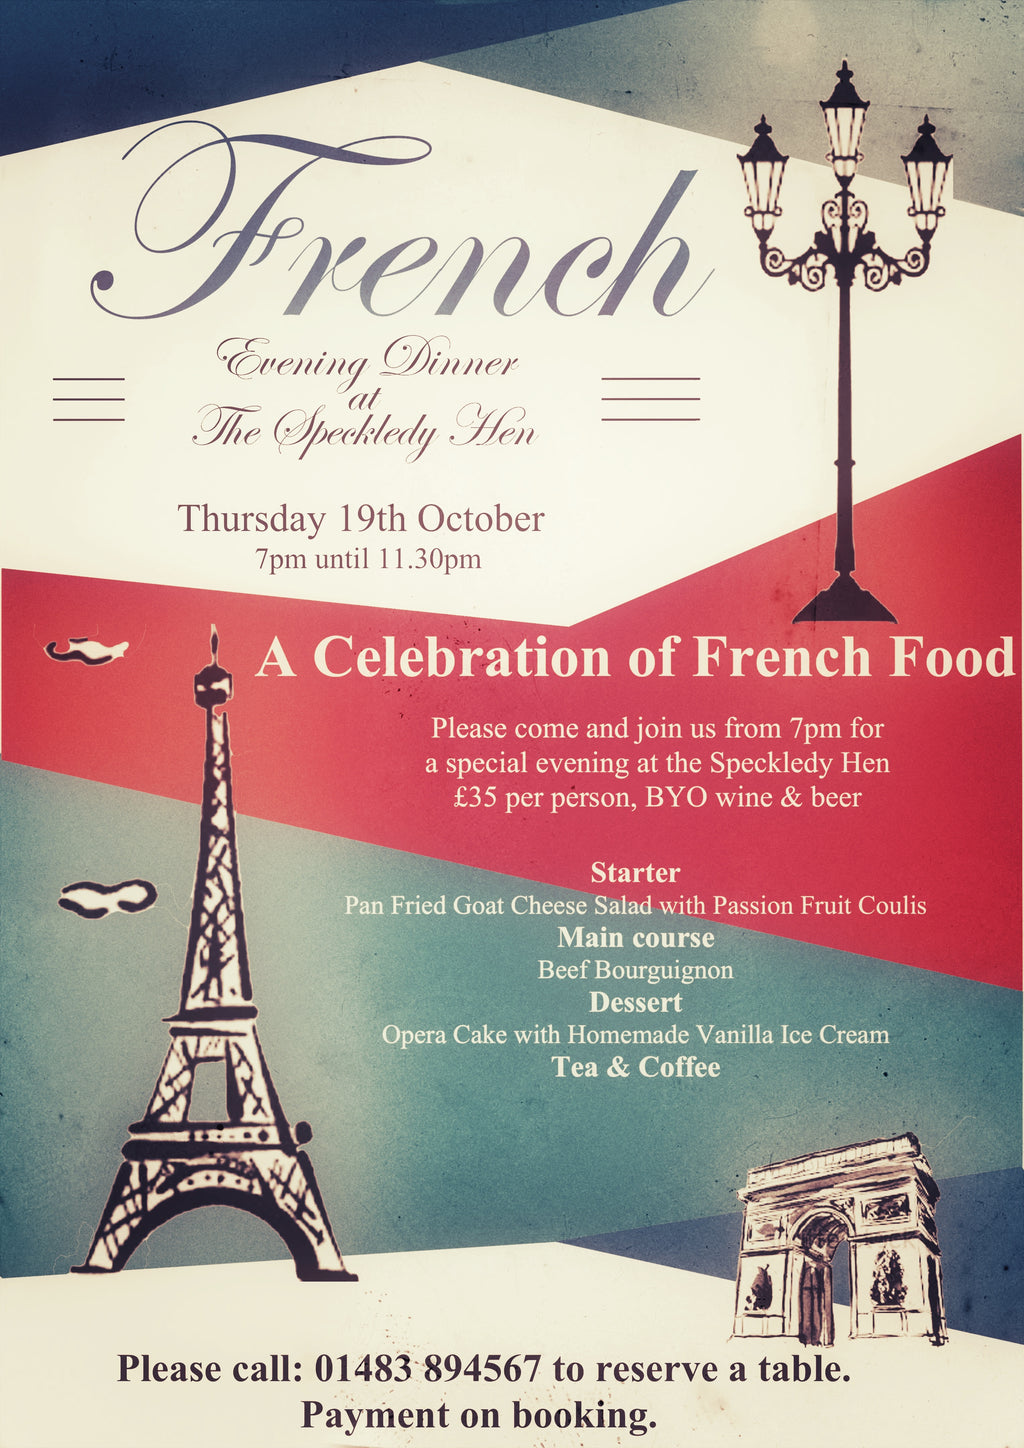 A Celebration of French Food